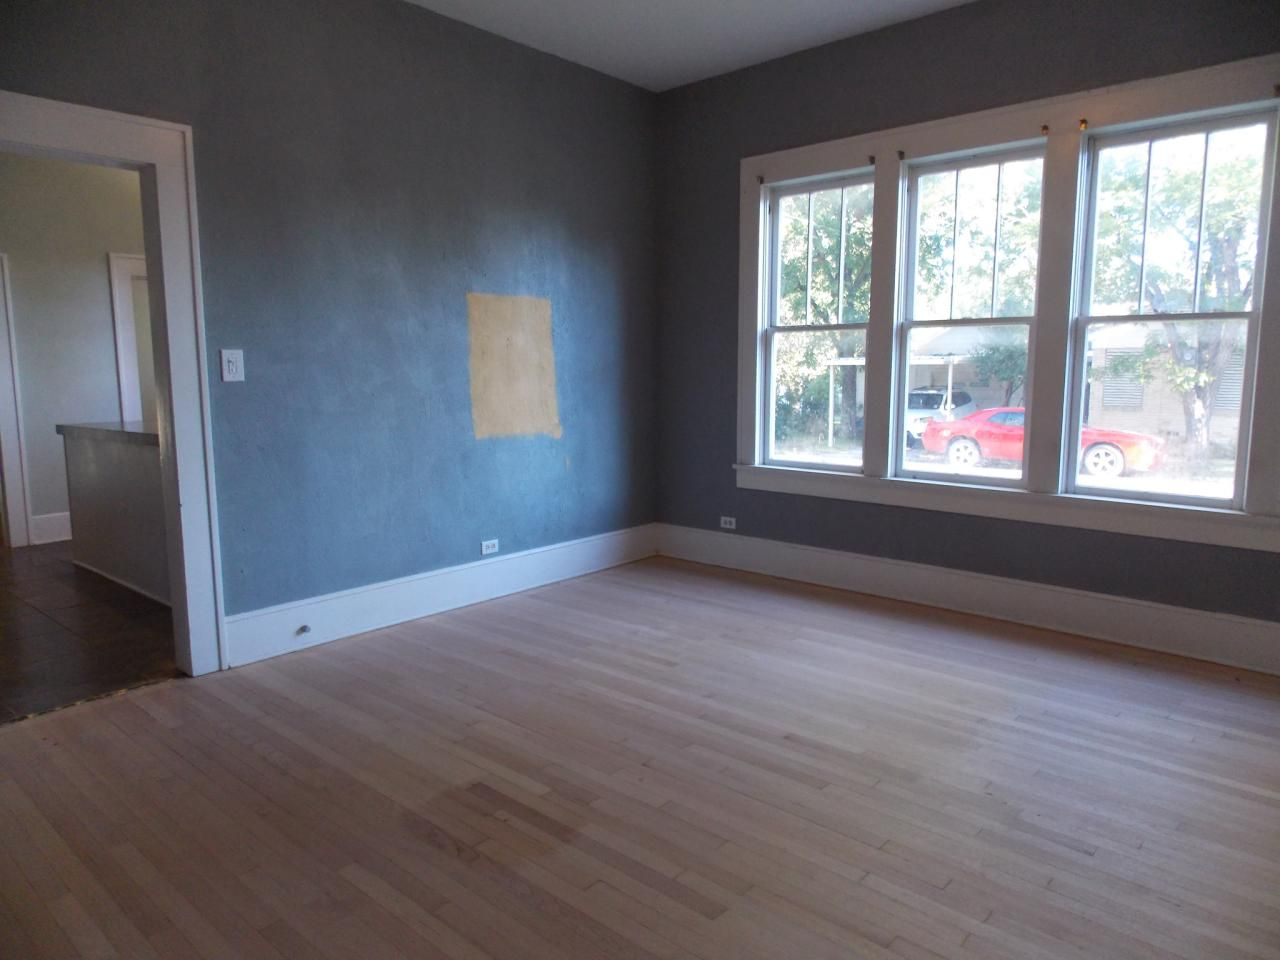 photos hgtv light filled dining room. Image Result For Fixer Upper Episode Photos | FARMHOUSE STYLE Pinterest Episodes, Sunroom And Cozy Hgtv Light Filled Dining Room N